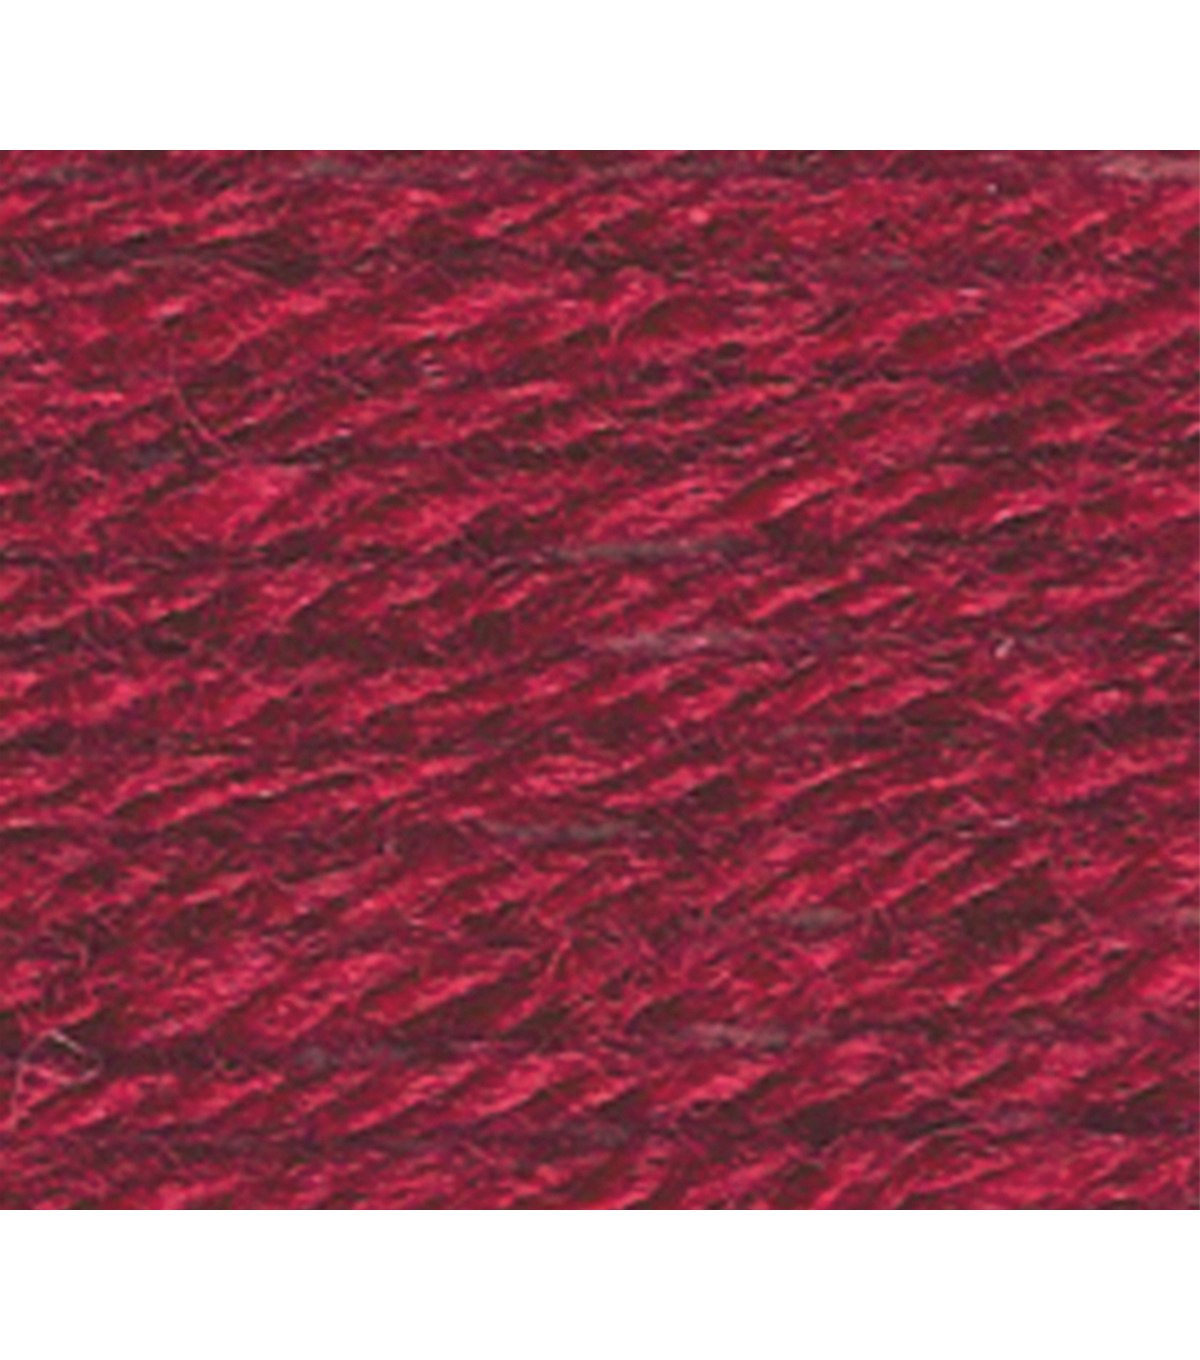 Lion Brand Wool-Ease Yarn, Cranberry